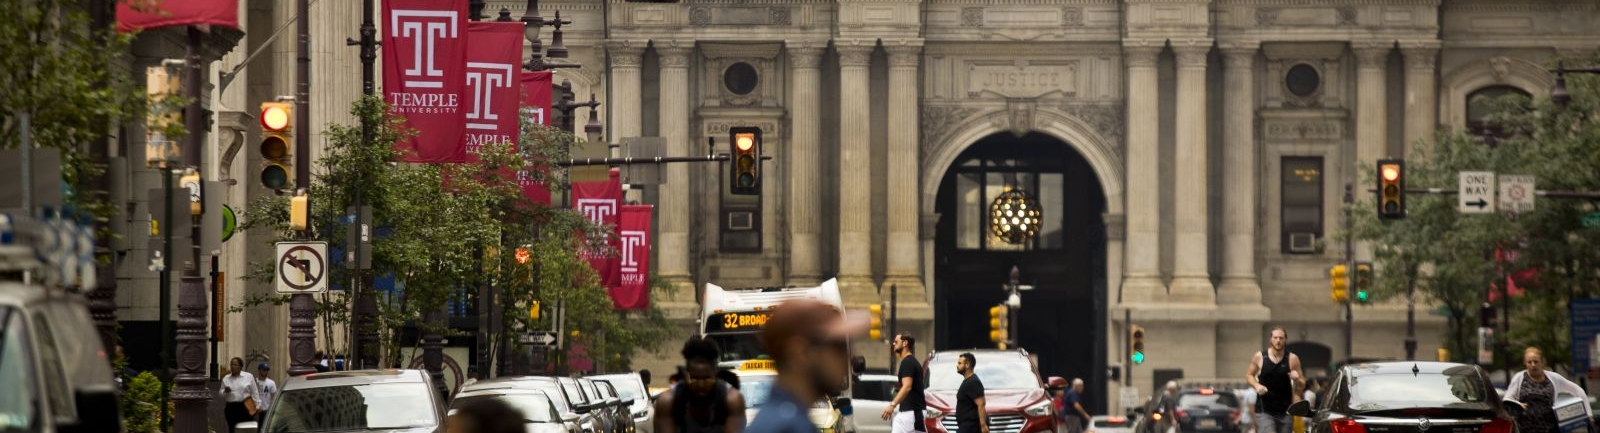 Temple University banners on Broad Street in front of Independence Hall in Philadelphia.